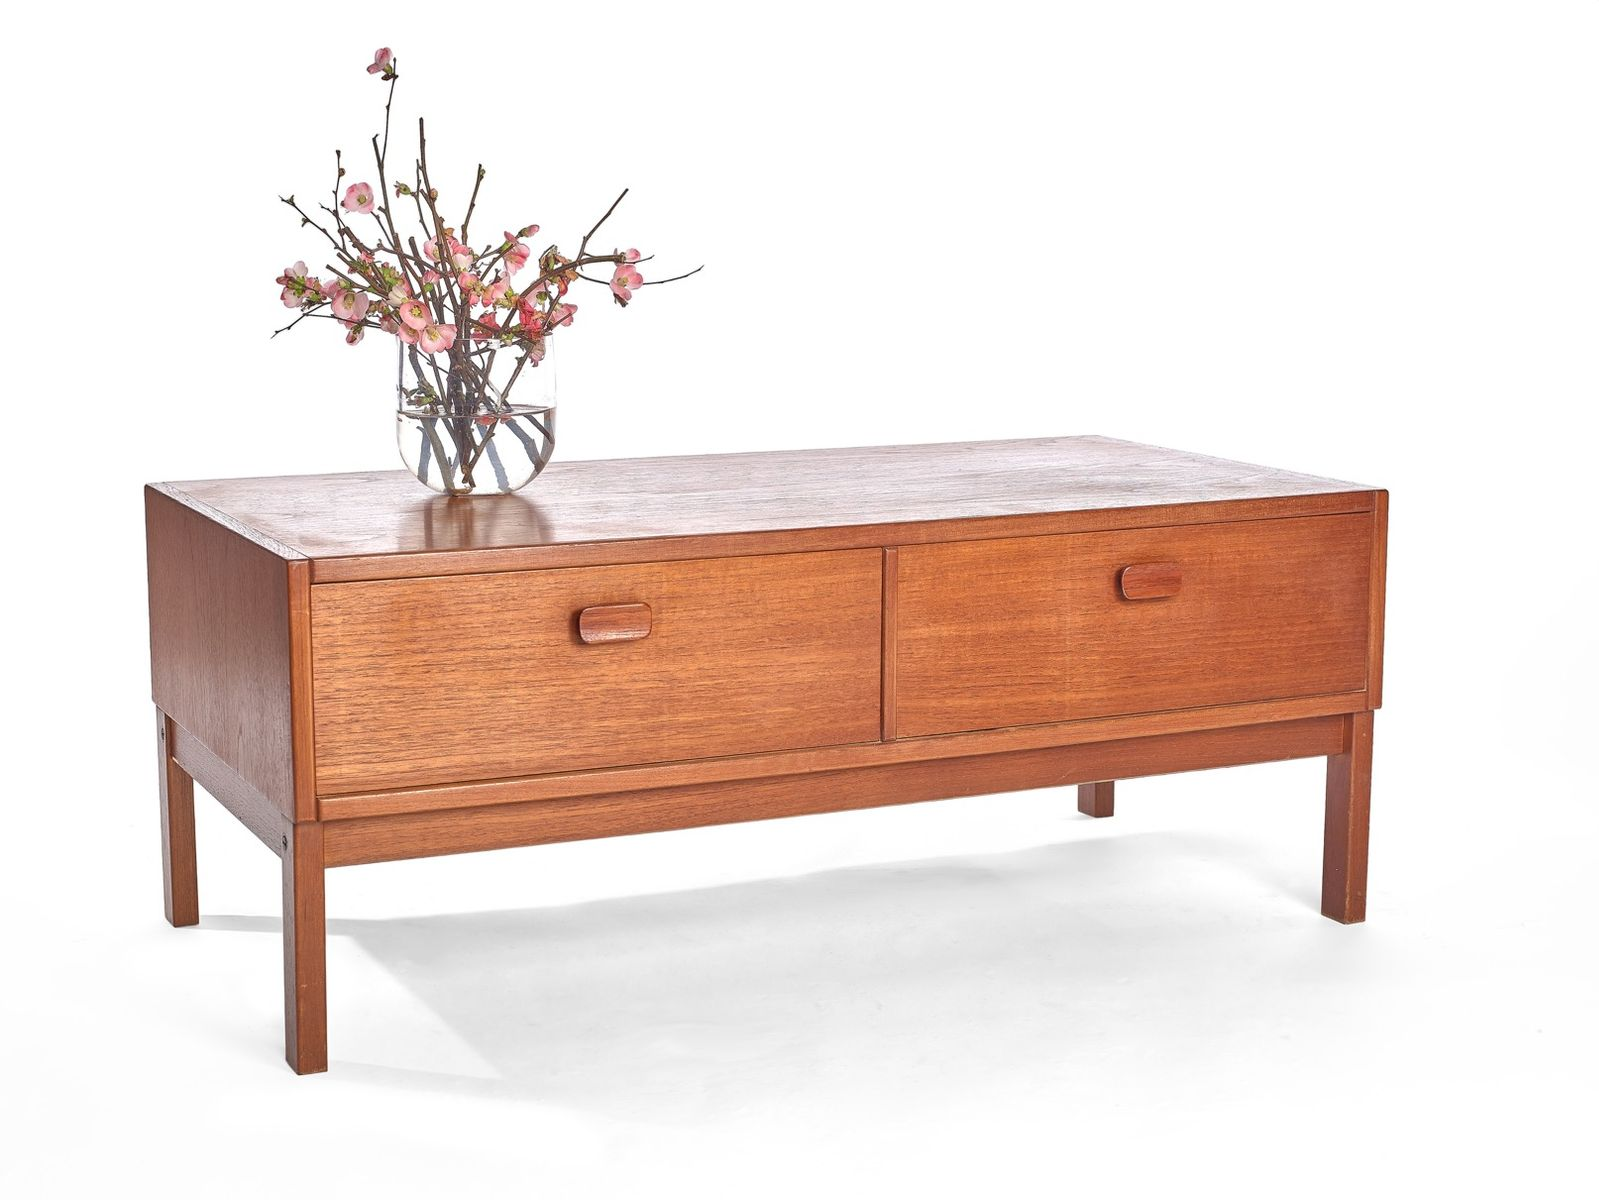 Teak low chest of drawers s for sale at pamono